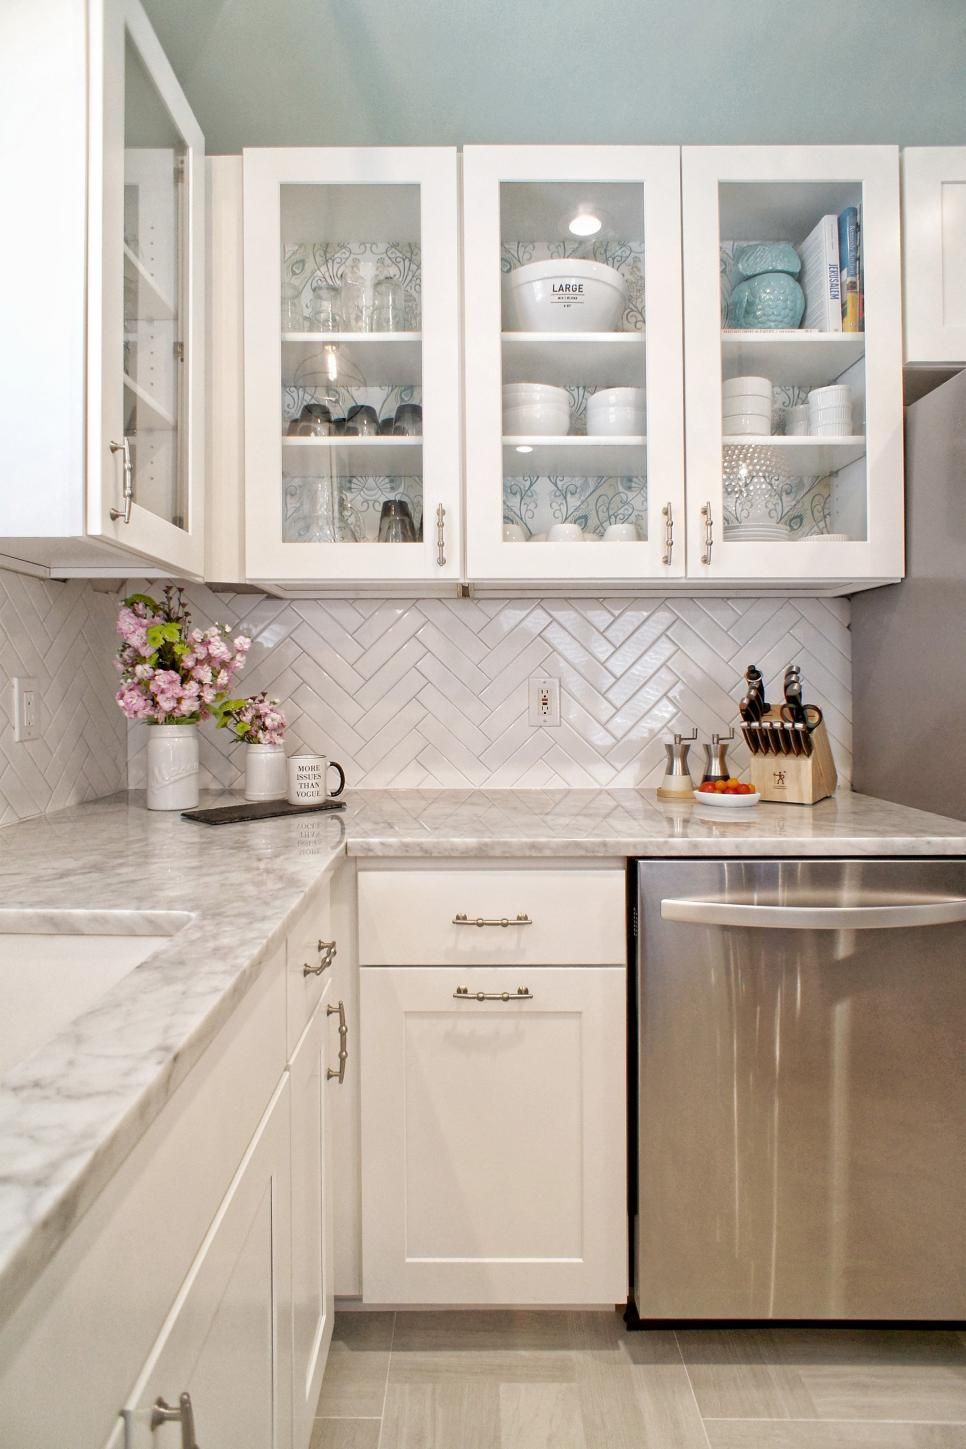 White Kitchen Backsplash Expandable Table Our 25 Most Pinned Photos Of 2016 Dream Home Love This